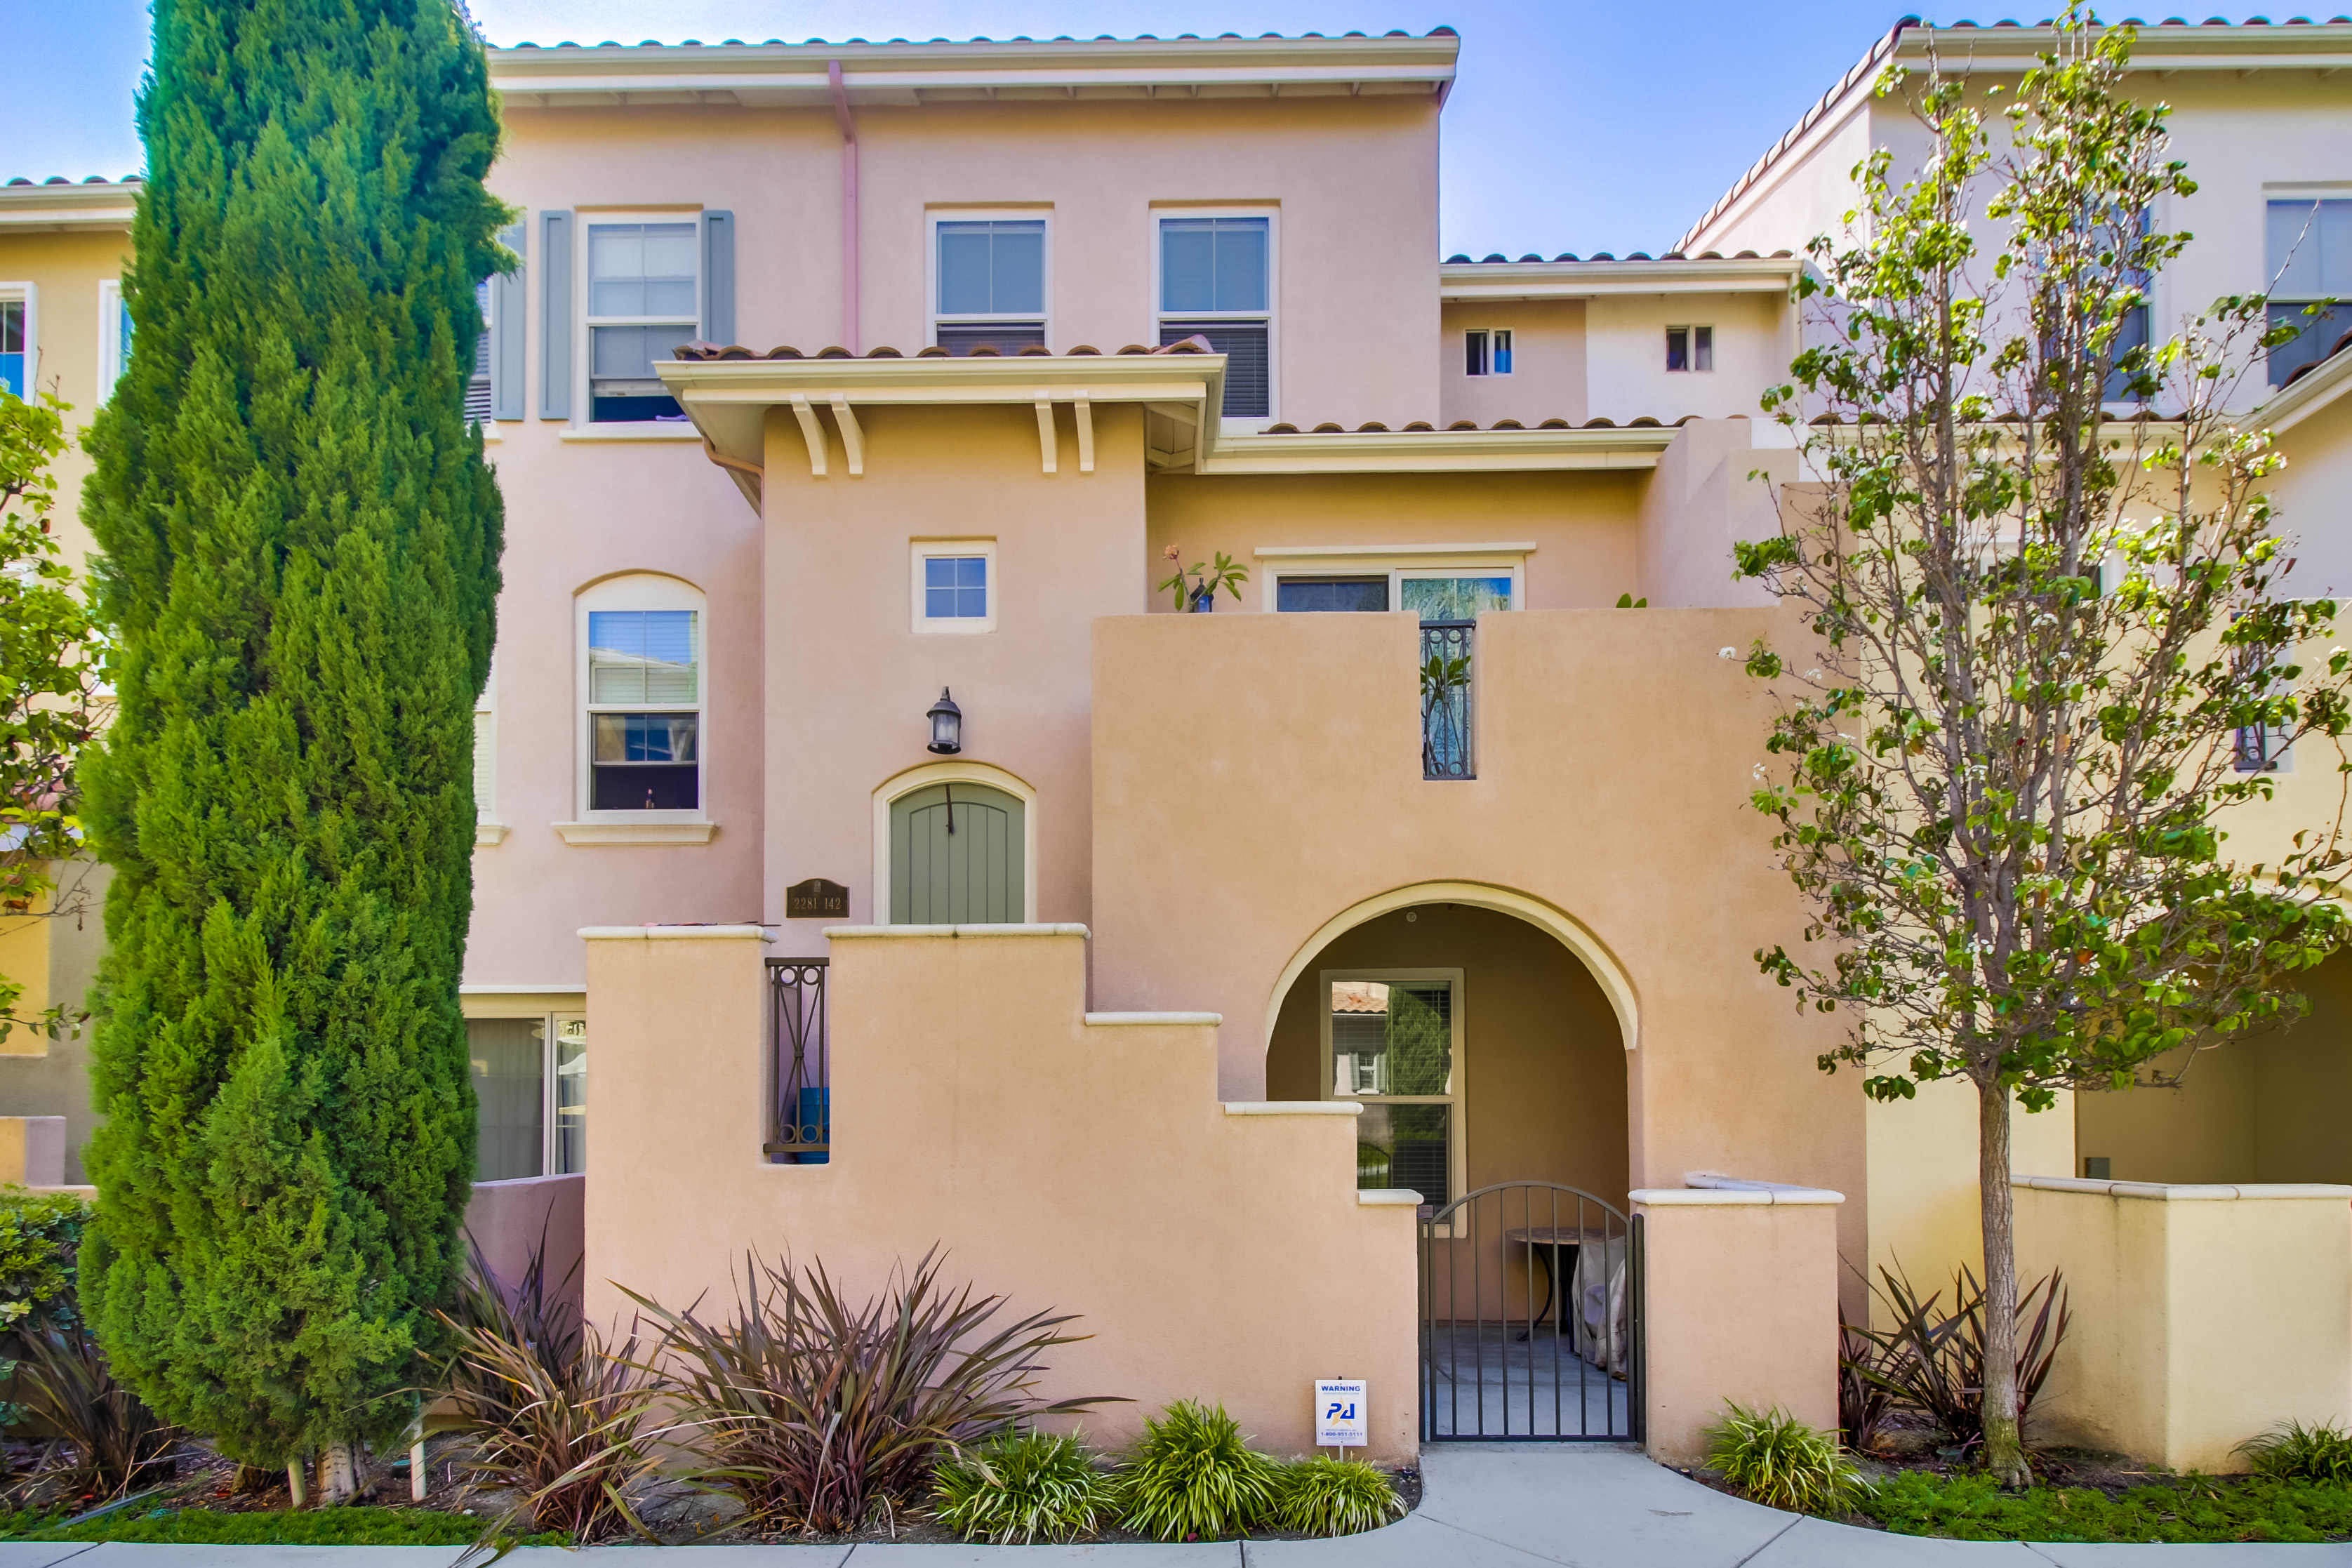 Townhouse for Sale at 2281 Huntington Point Road 2281 Huntington Point Road 142 Chula Vista, California 91914 United States